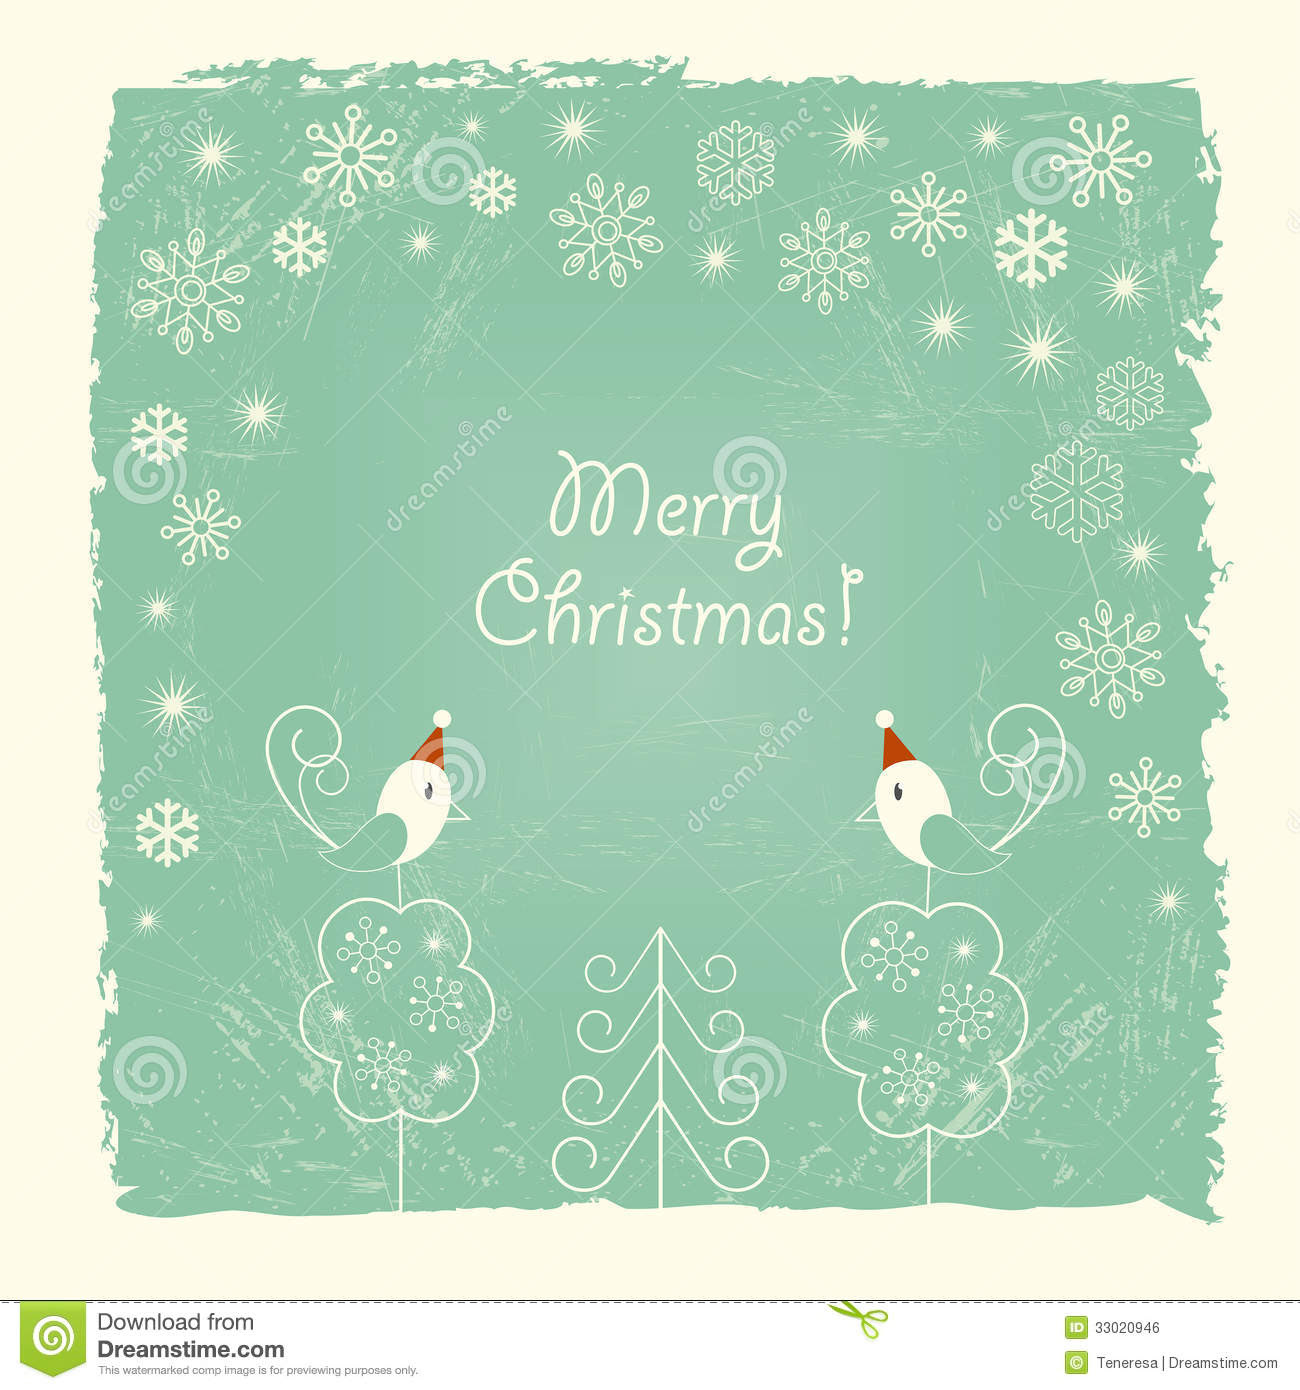 Retro Christmas Card With Snowflakes And Birds Royalty Free Stock ...